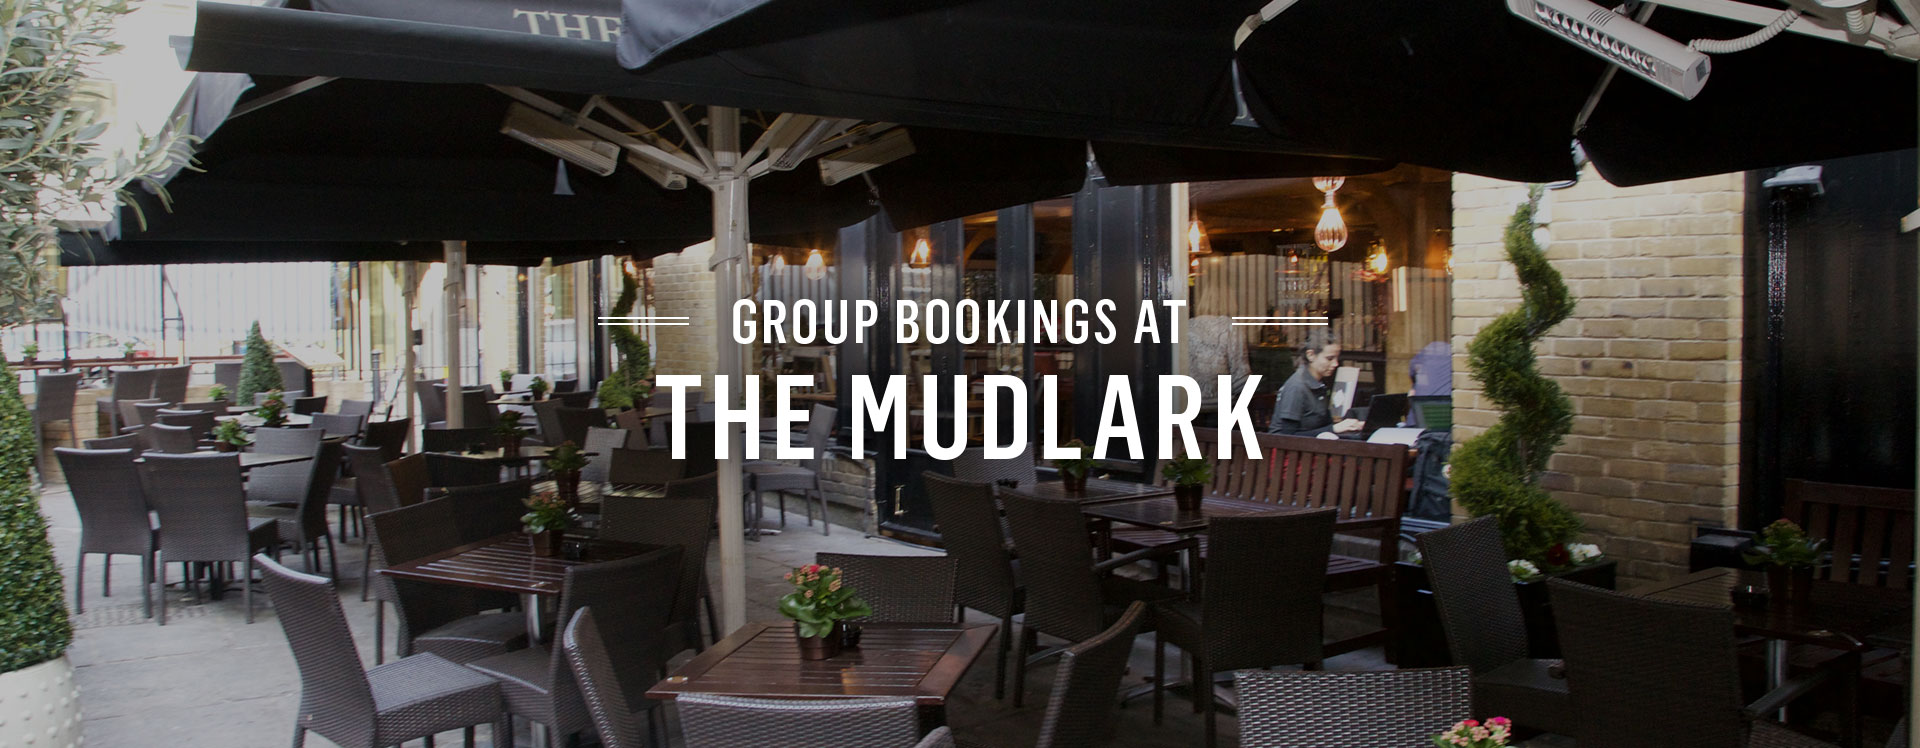 Group Bookings at The Mudlark